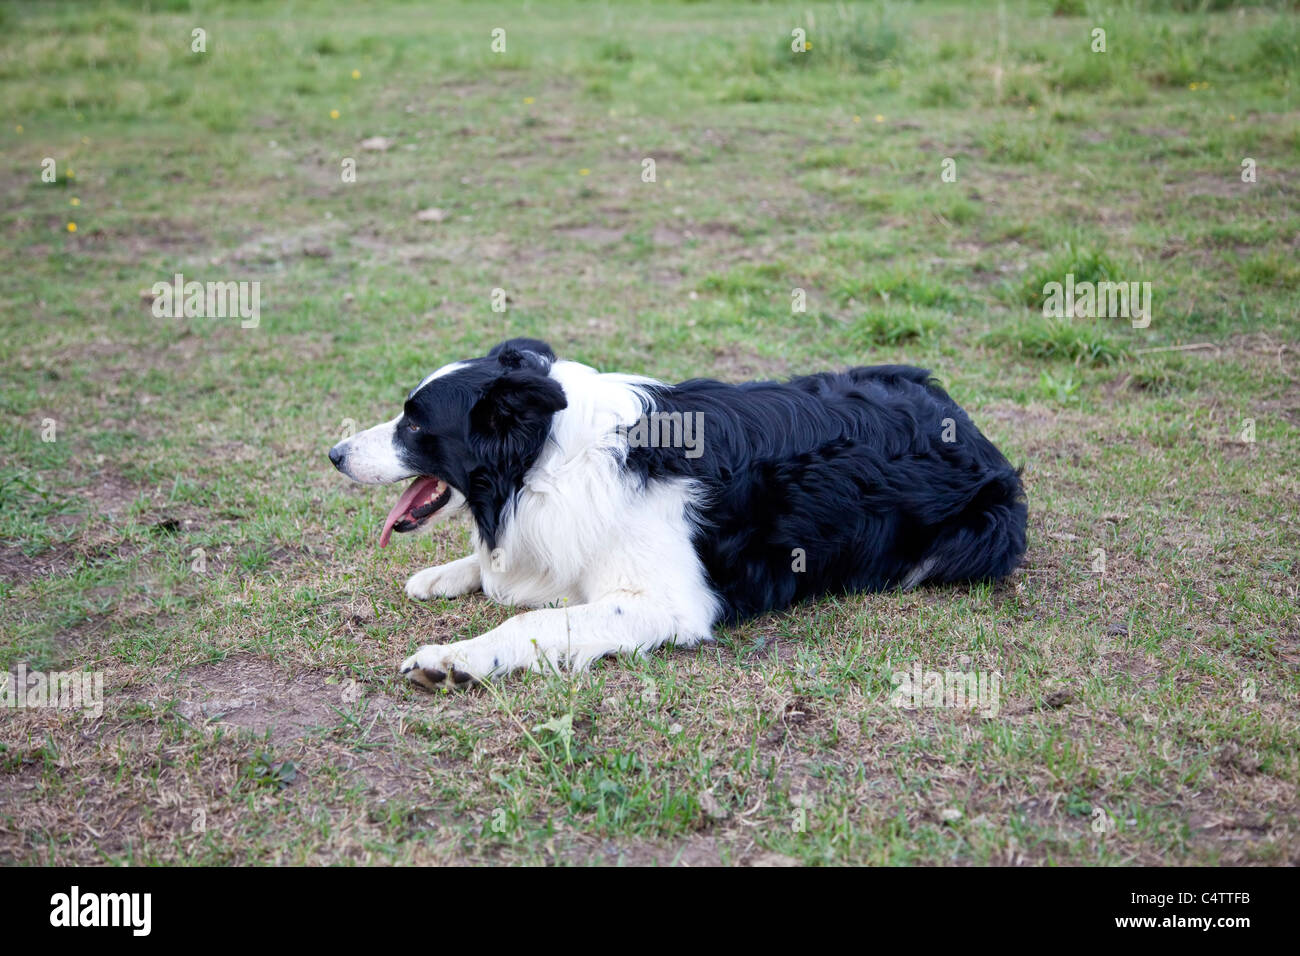 Border Collie dog black and white lying down in a field tongue out - Stock Image